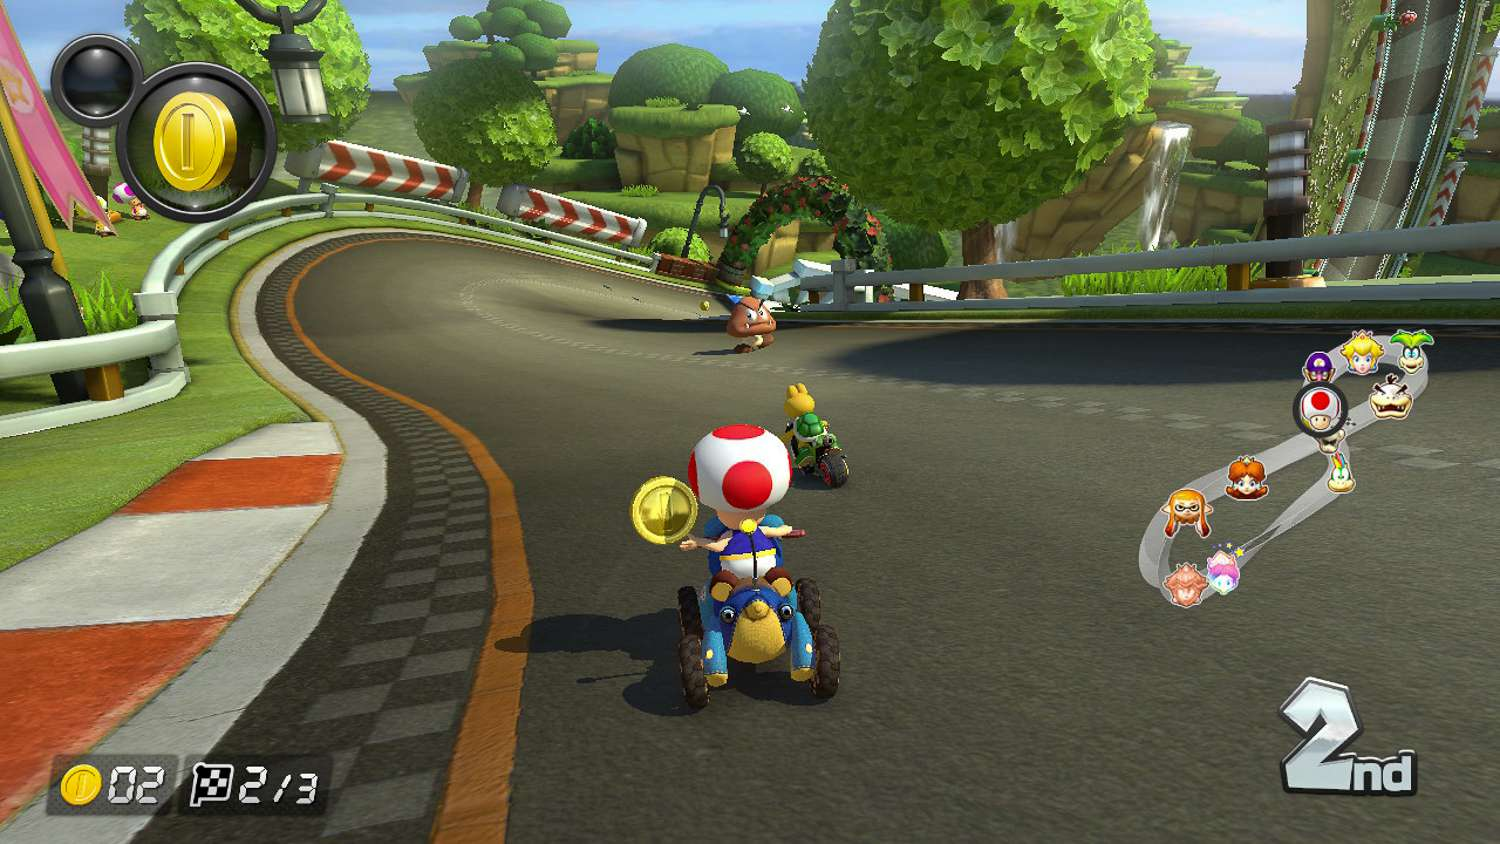 Mario Kart 8 - Best Wii U Cemu Games to play on PC [Wii U Emulator]